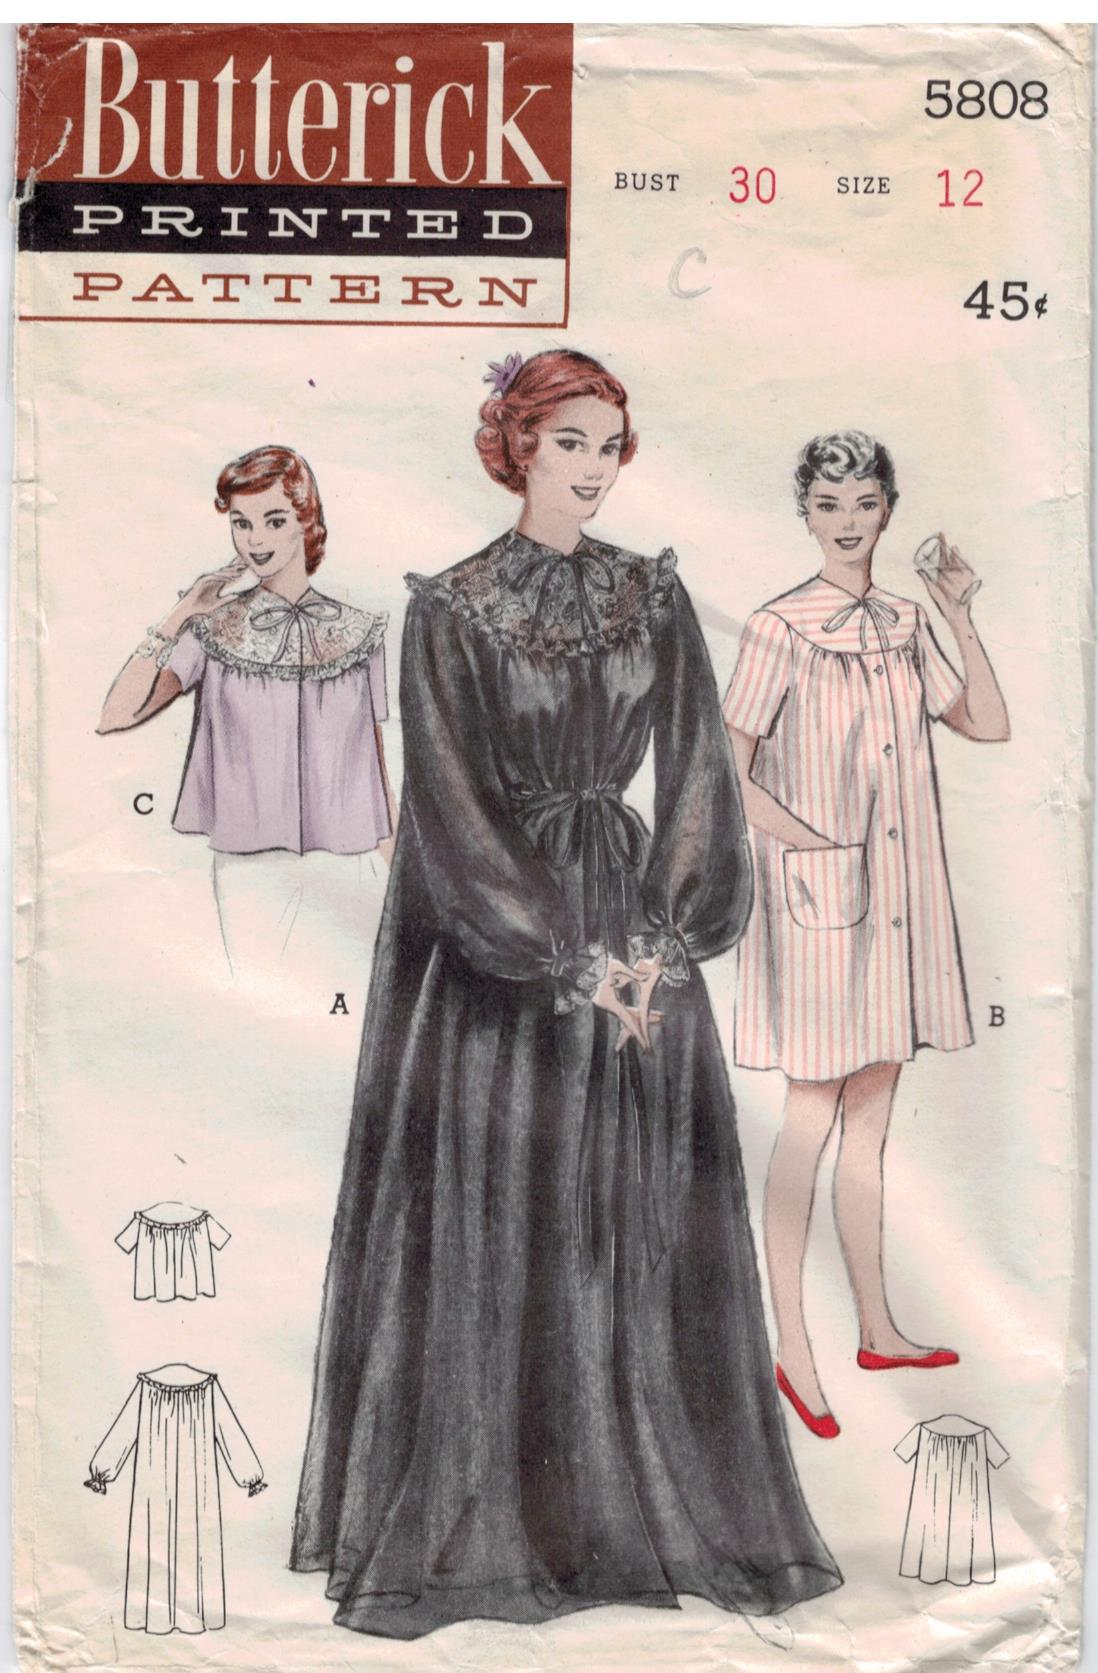 Butterick Pattern 5808 Vintage Peignoir Robe Housecoat And Bed Jacket Size 12 Sewing Pattern Heaven